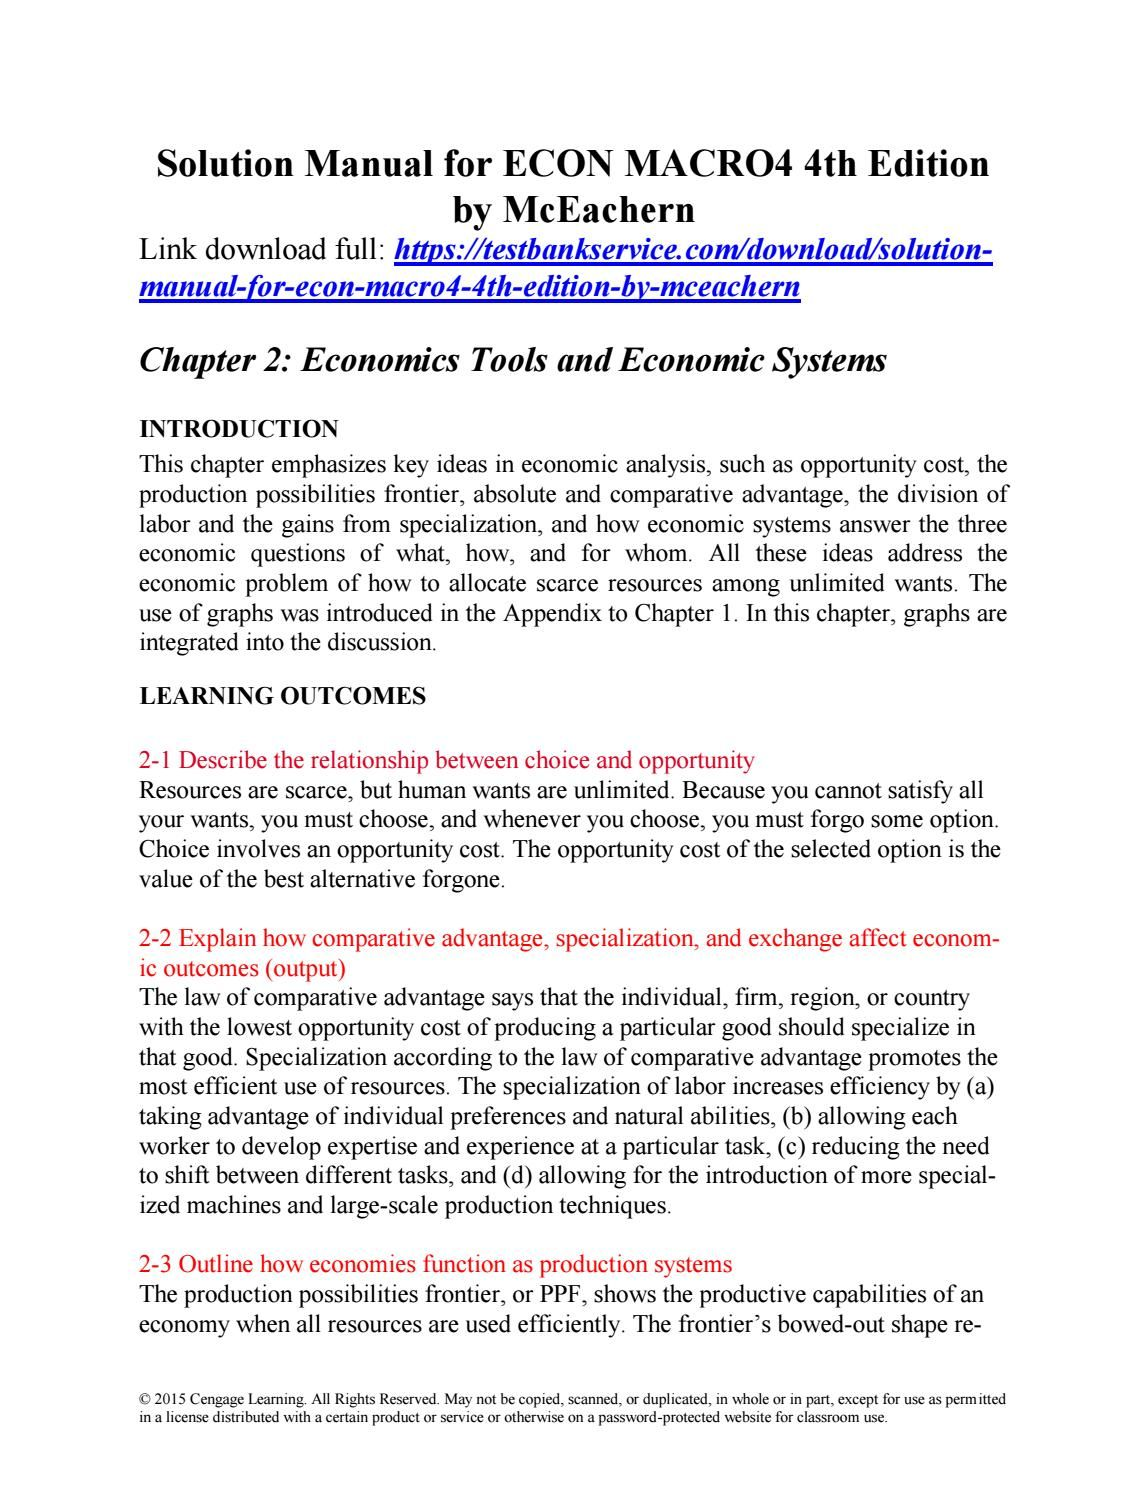 ... Array - solution manual for econ macro4 4th edition by mceachern  solutions rh pinterest com